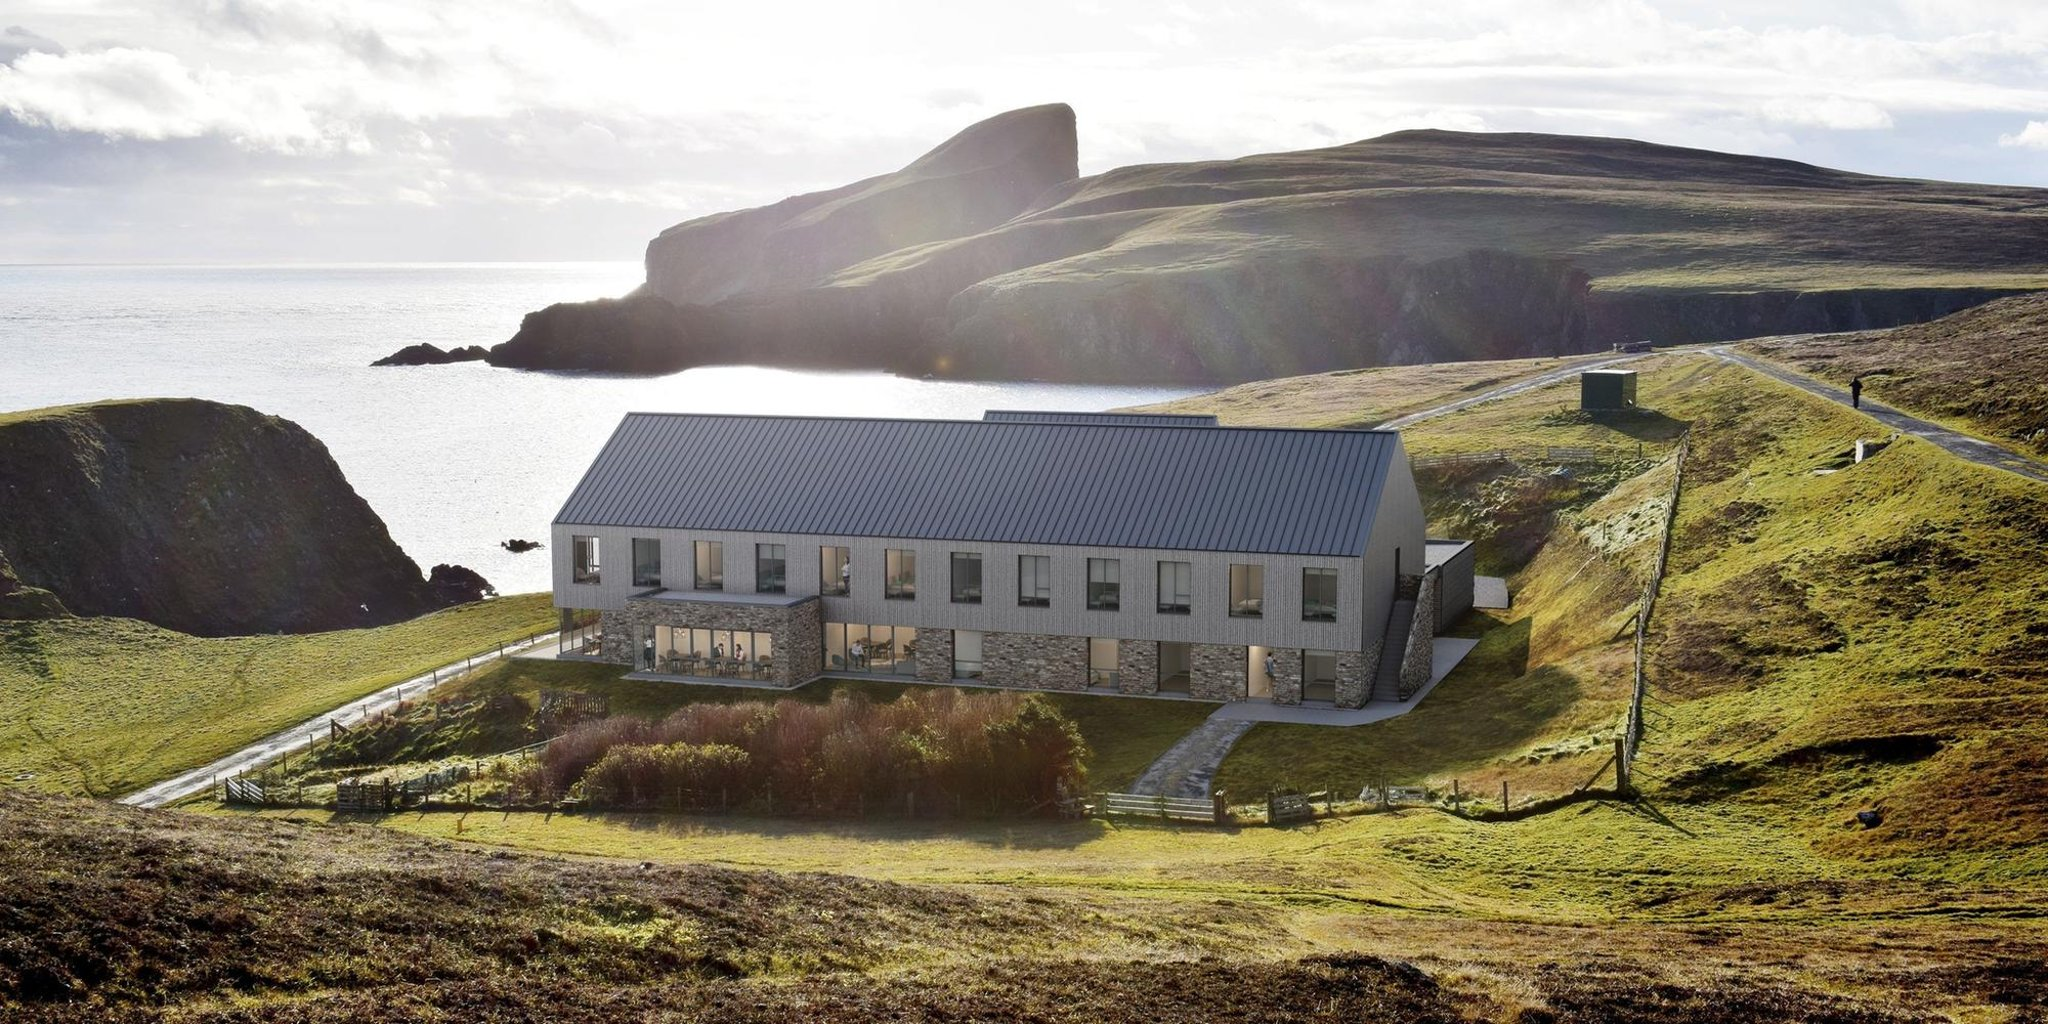 Plans for new Fair Isle bird observatory return to drawing board as Brexit and Covid-19 thwart rebuilding efforts